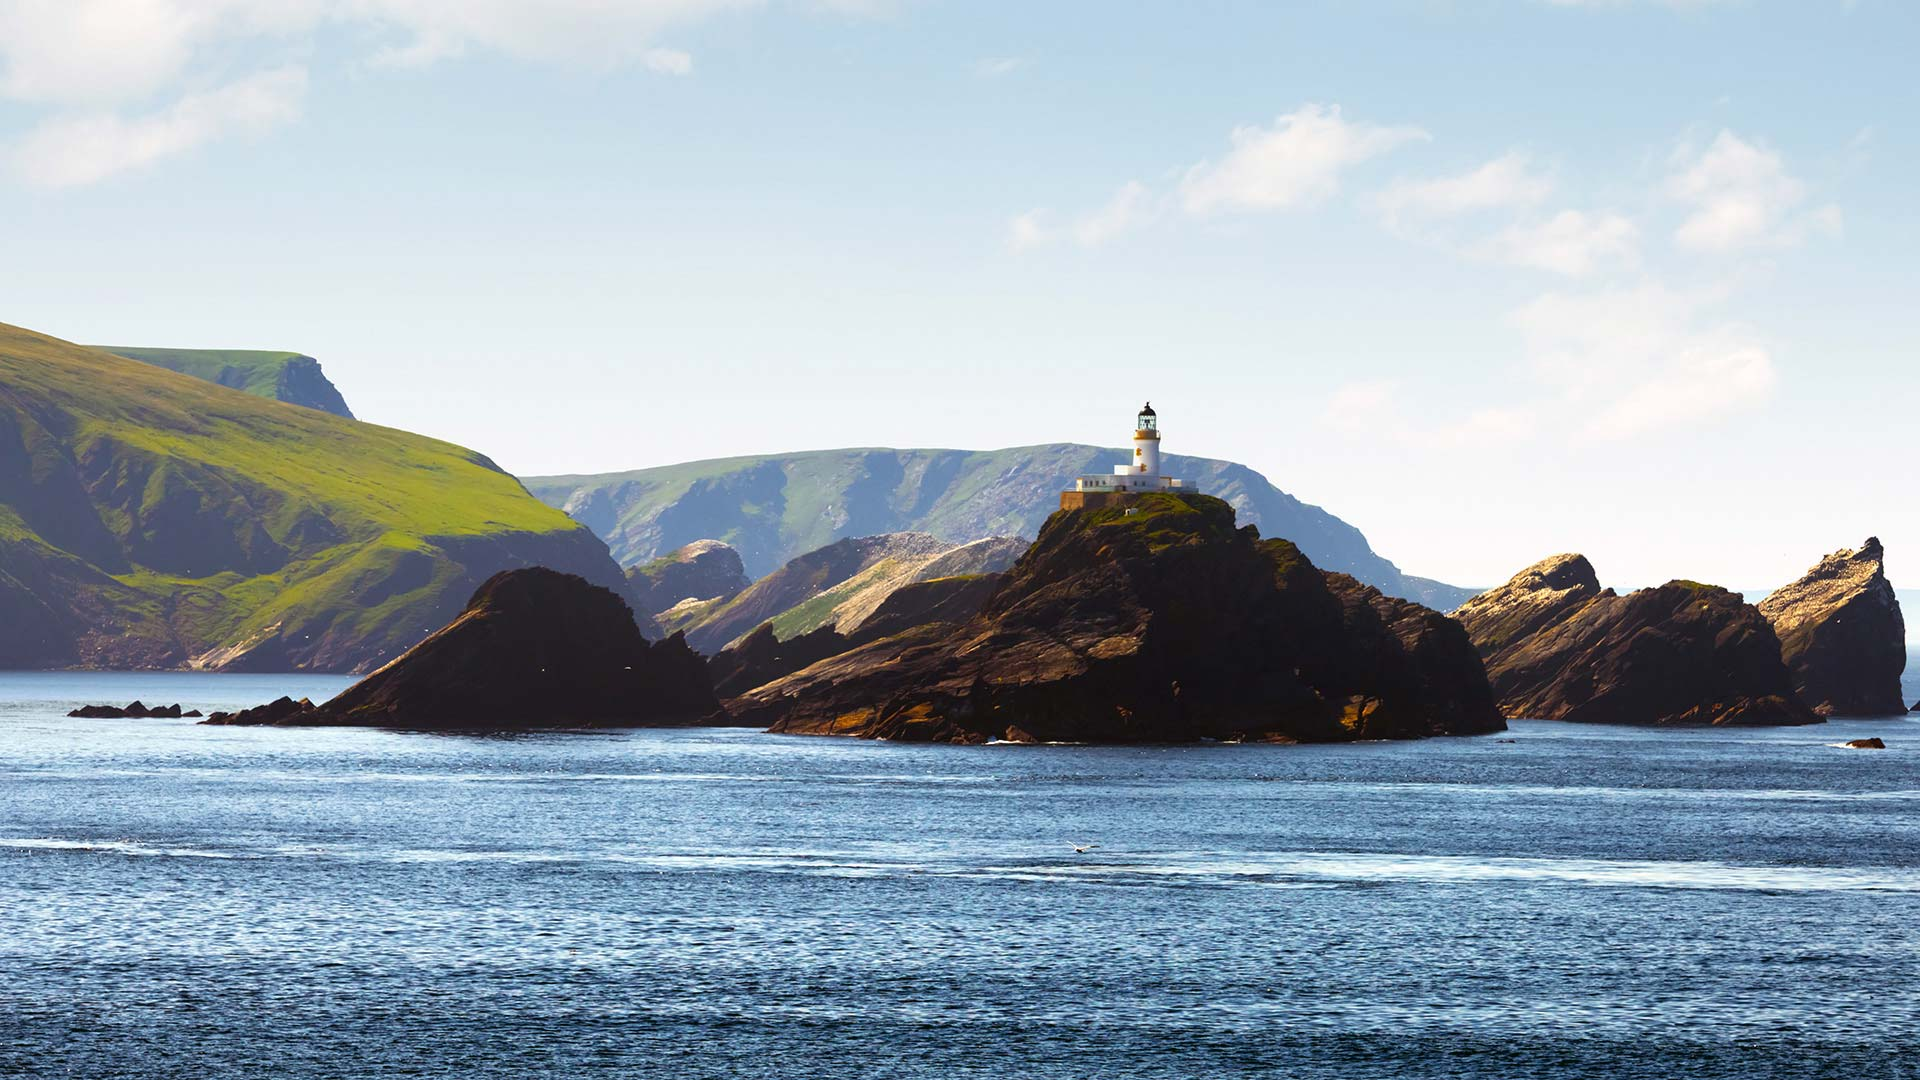 Panorama to illustrate dating in shetland islands